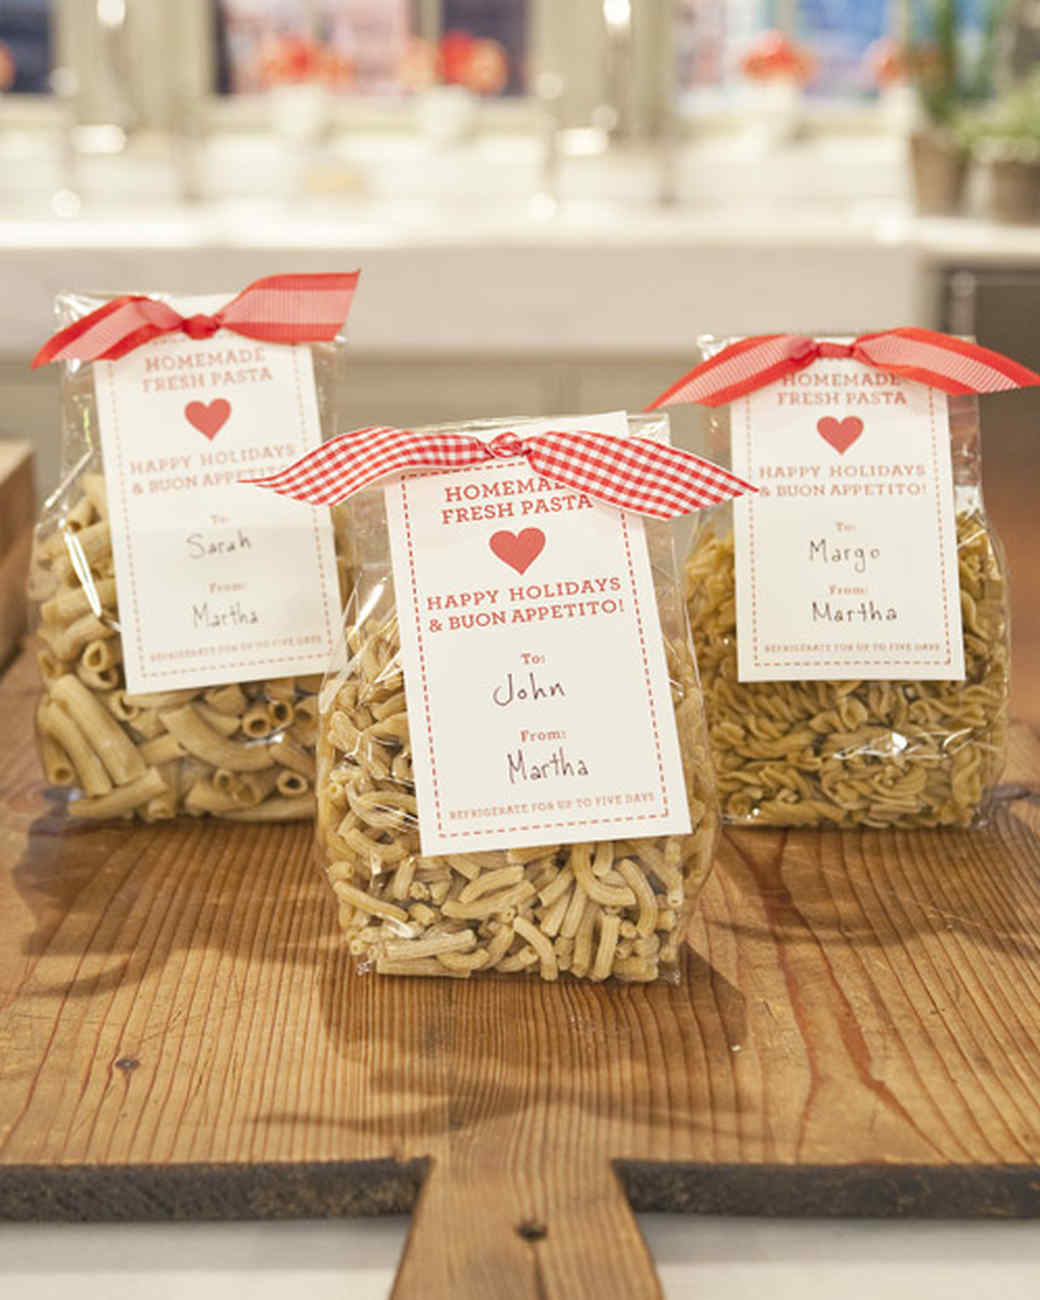 Homemade Pasta Bags Dried